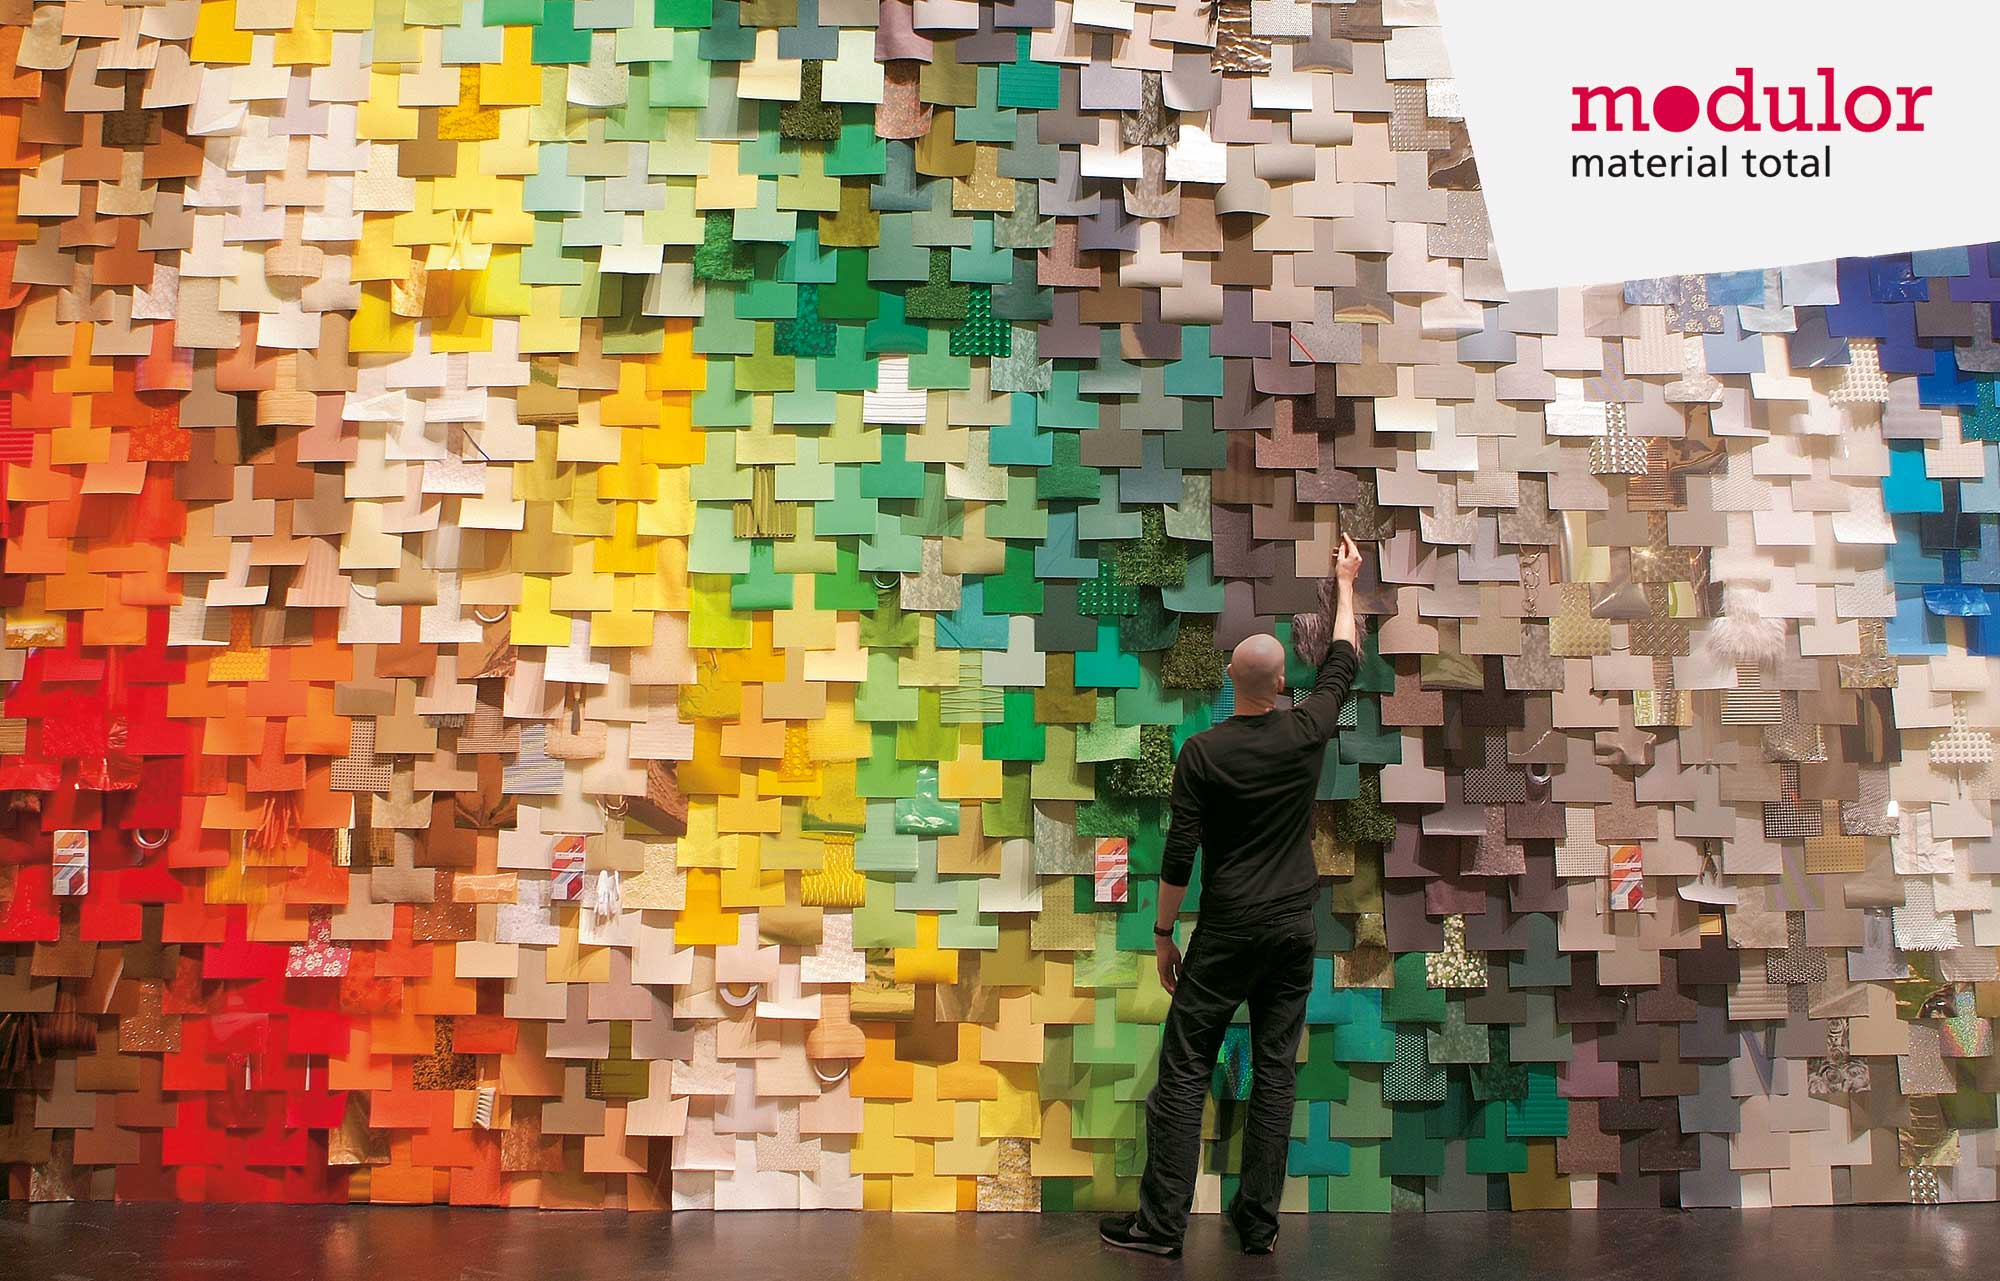 Modulor-touch-material-total-messe-detail-wand-bunt-color-kreative-berlin-shop-Anna-dabrowski